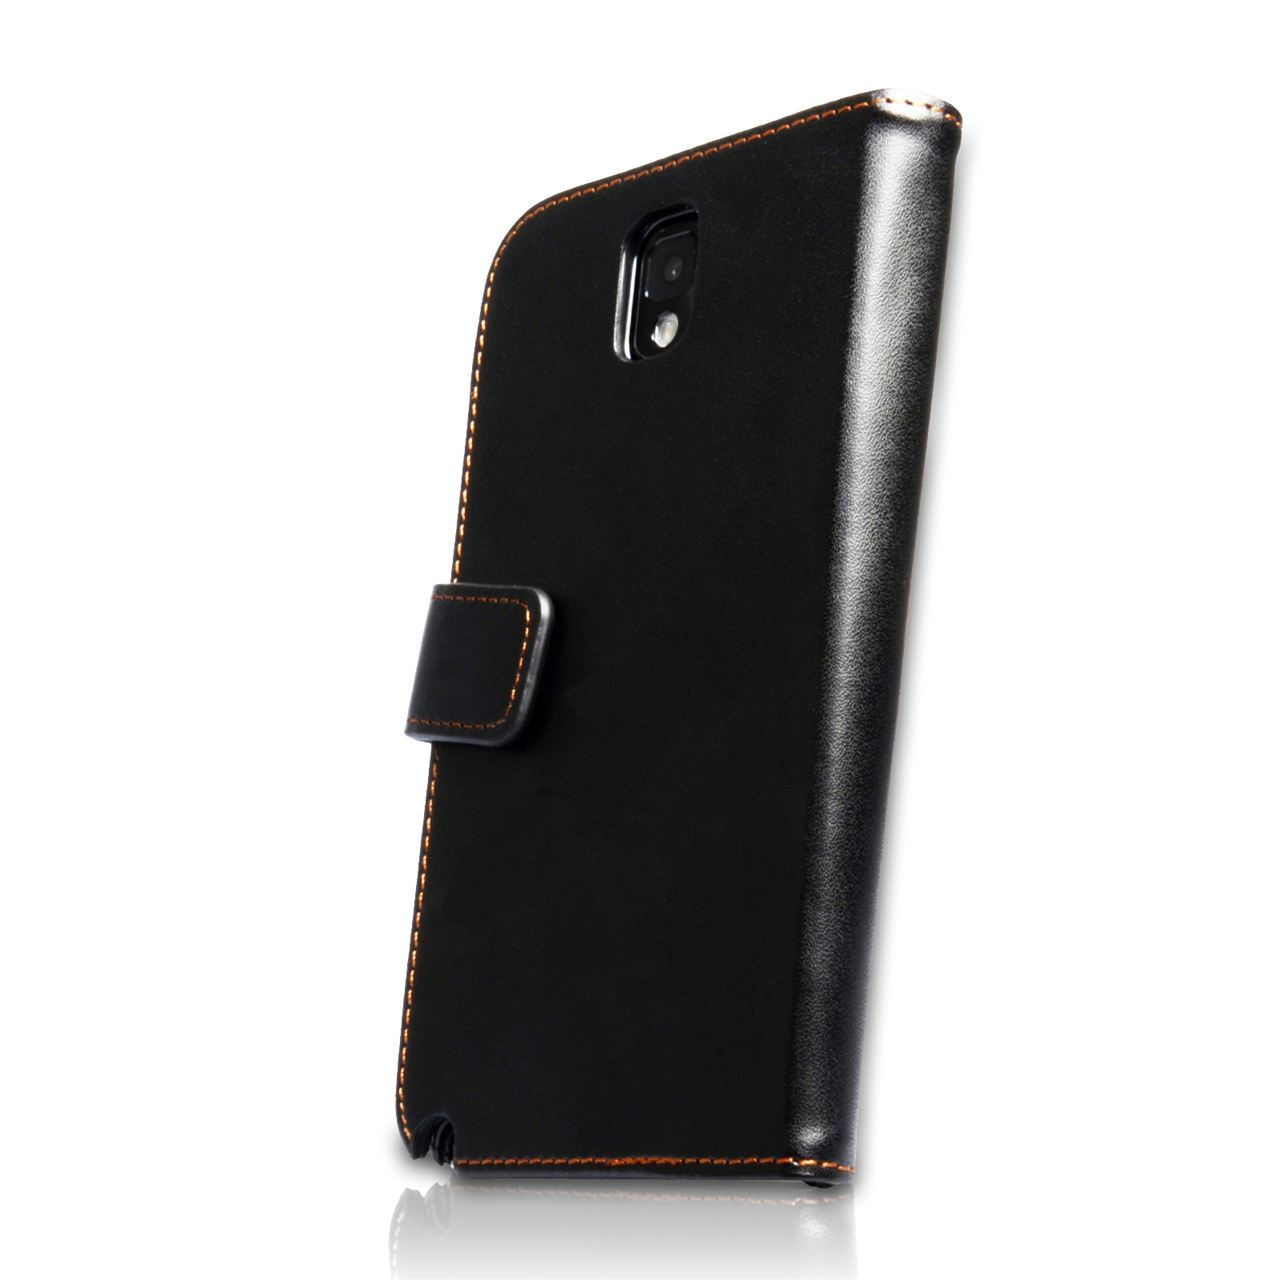 YouSave Samsung Galaxy Note 3 Leather Effect Wallet Case - Black